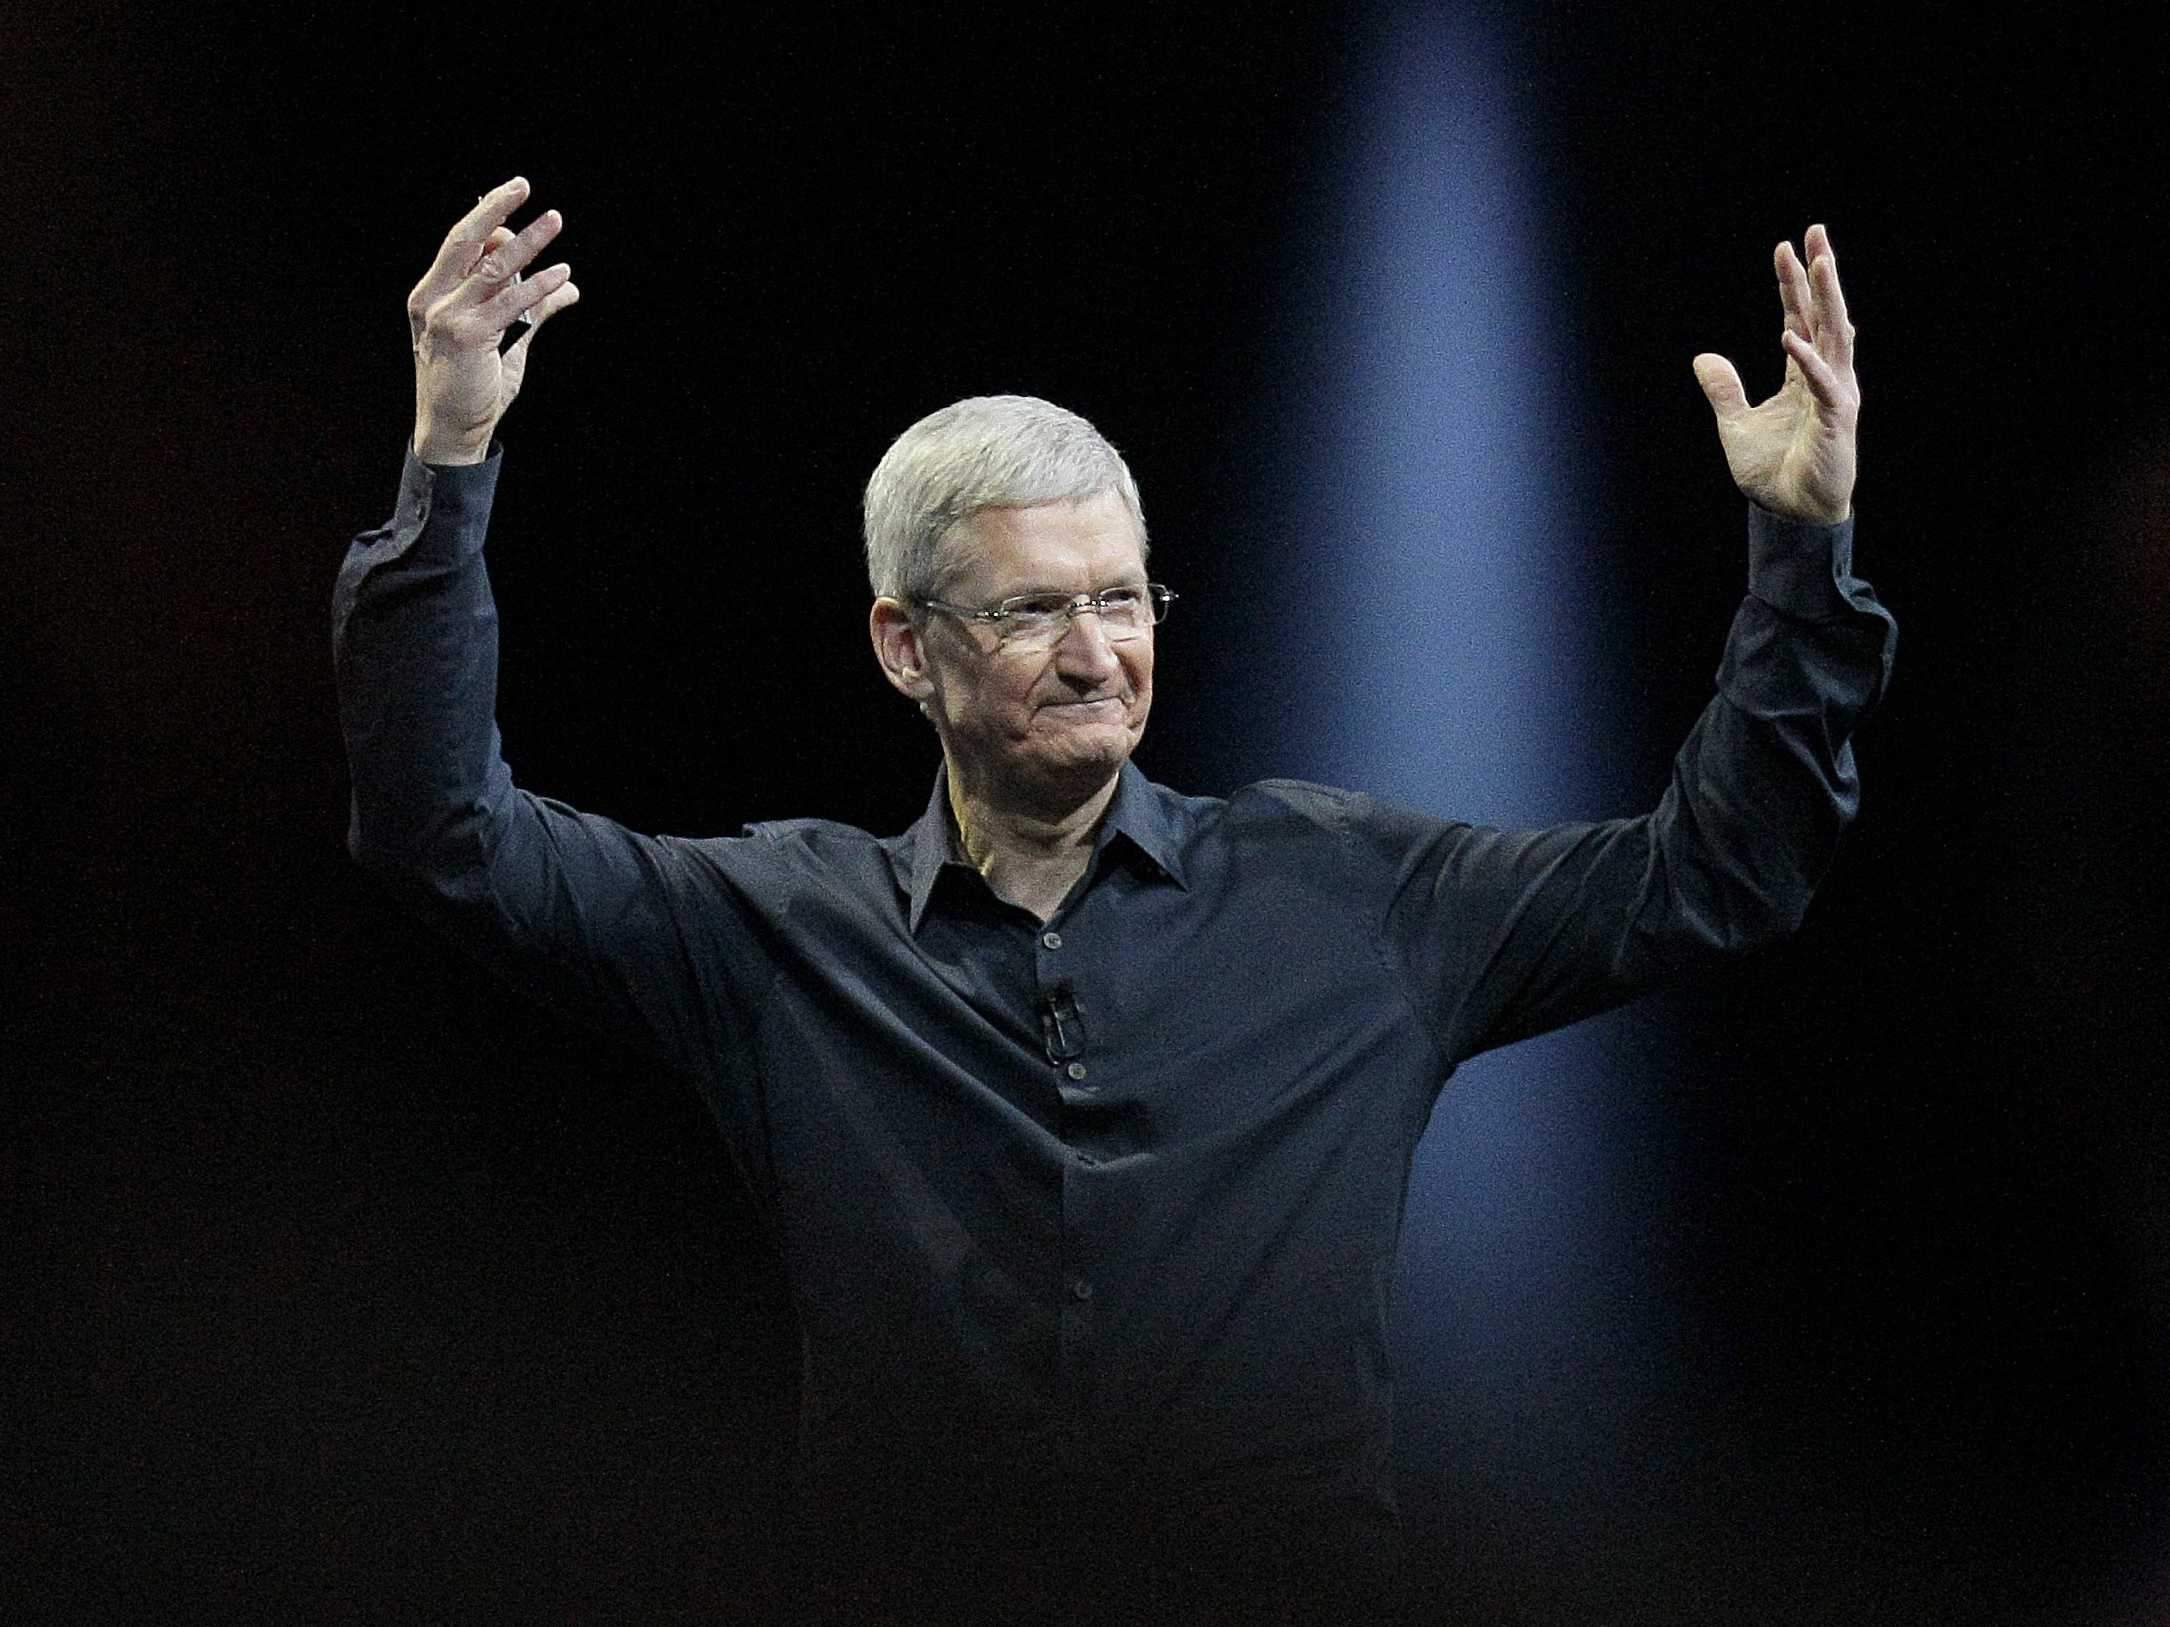 2170x1627 - Tim Cook Wallpapers 11